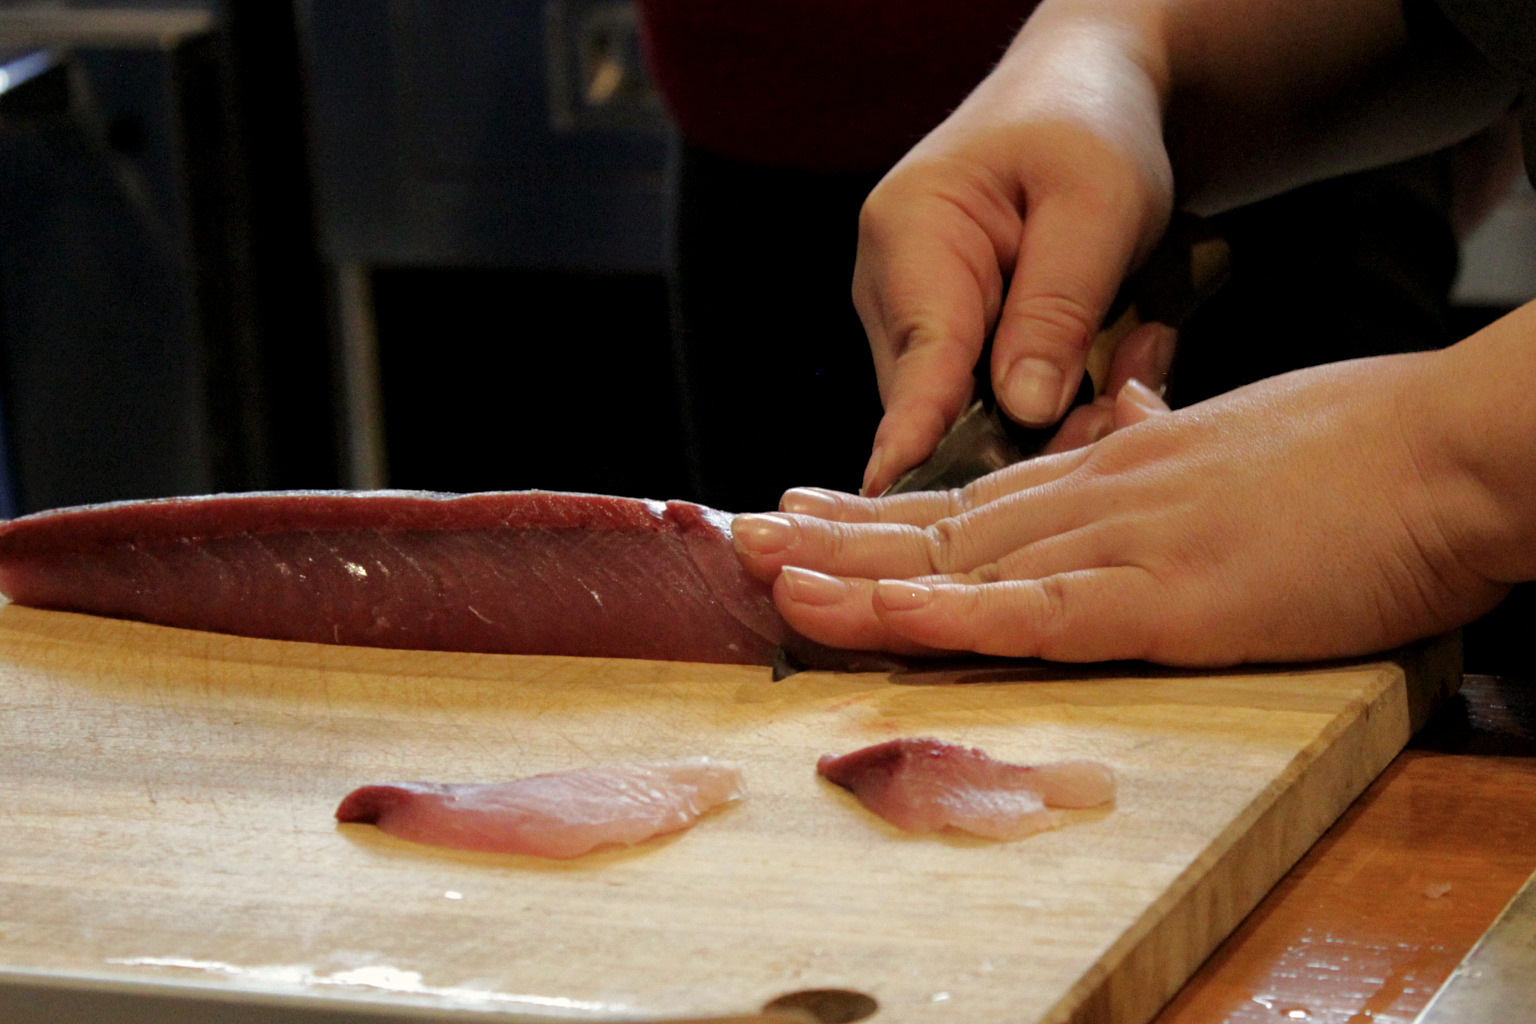 Naoko denonstrates the correct angle for cutting sashimi during her cooking class in Kanazawa, Japan